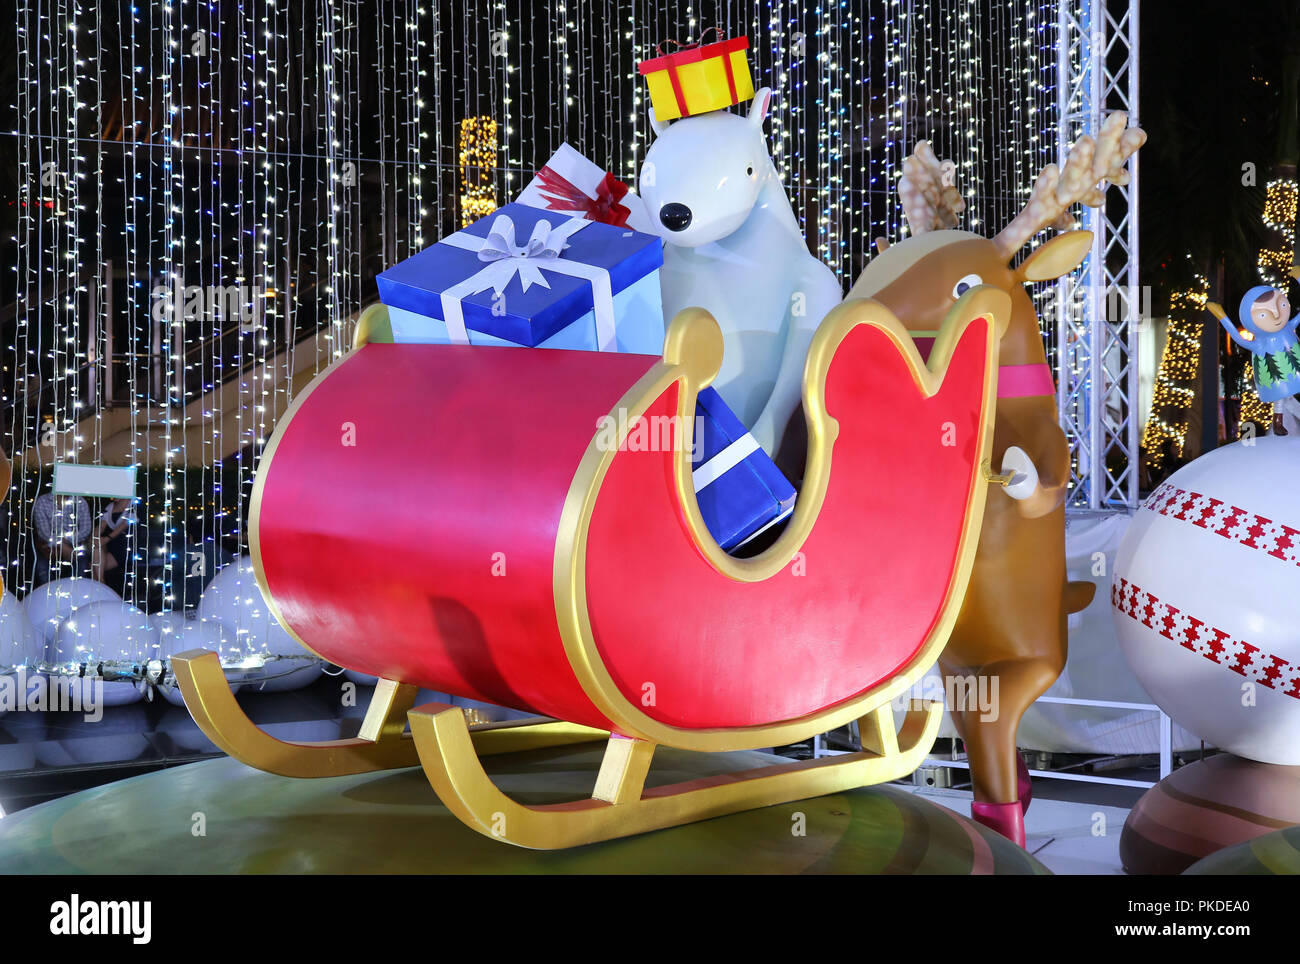 Funny Outdoor Christmas Decorations Of A Reindeer Pushing Sleigh